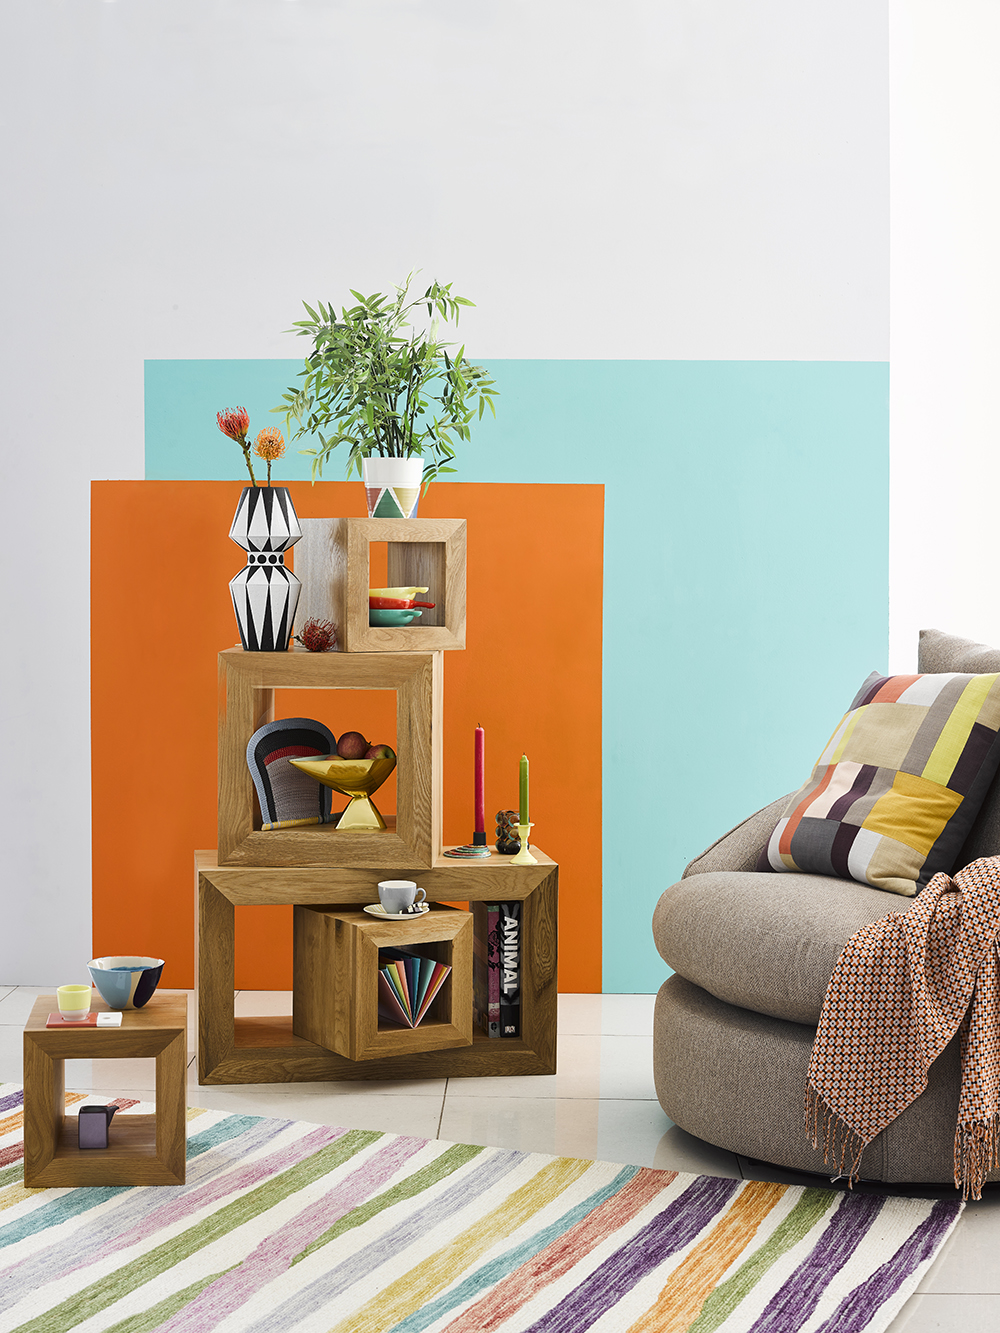 Box shelves and beige armchair blue and orange walls